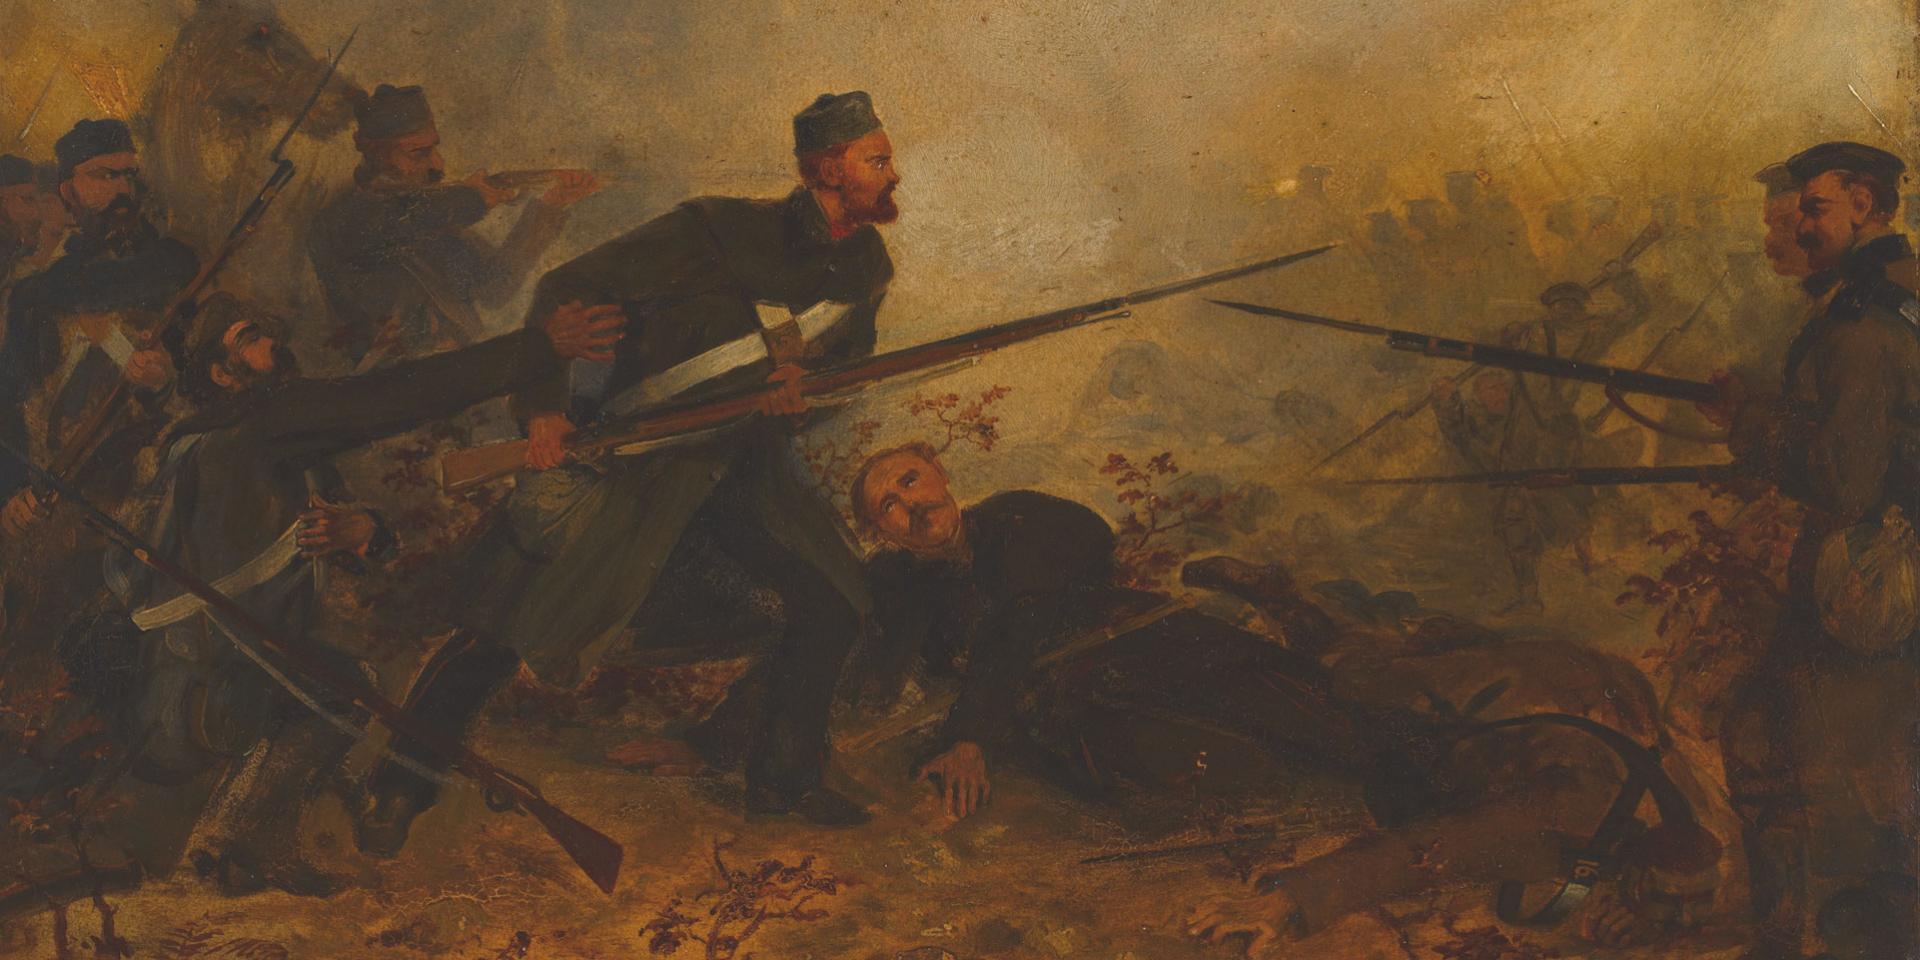 Private John McDermond, 47th (The Lancashire) Regiment of Foot, winning the VC by saving Colonel Haly at Inkerman, on 5 November 1854